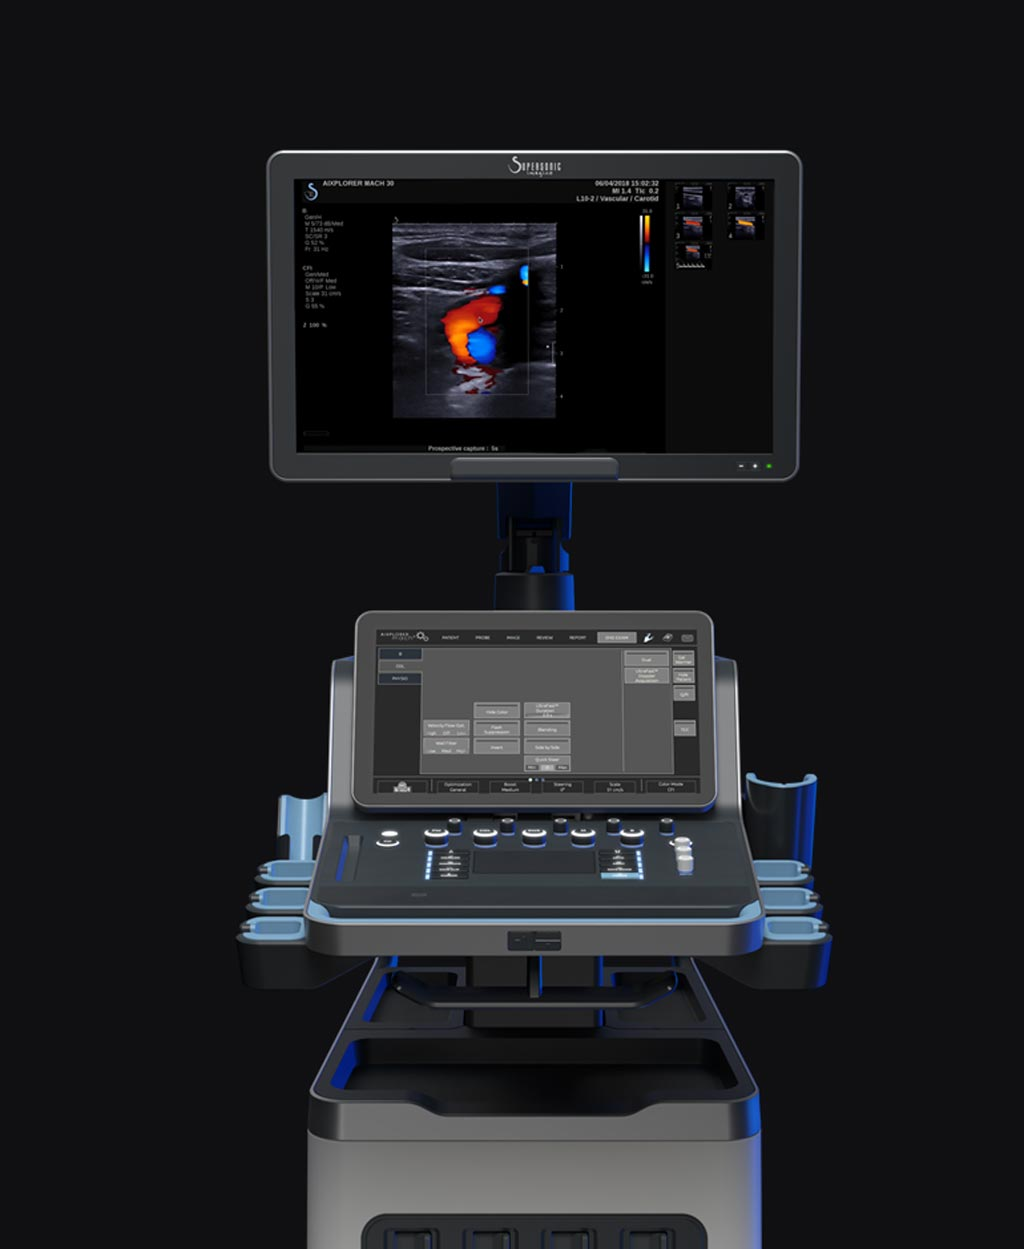 Image: The Aixplorer MACH 30 ultrasound system (Photo courtesy of SuperSonic Imagine).